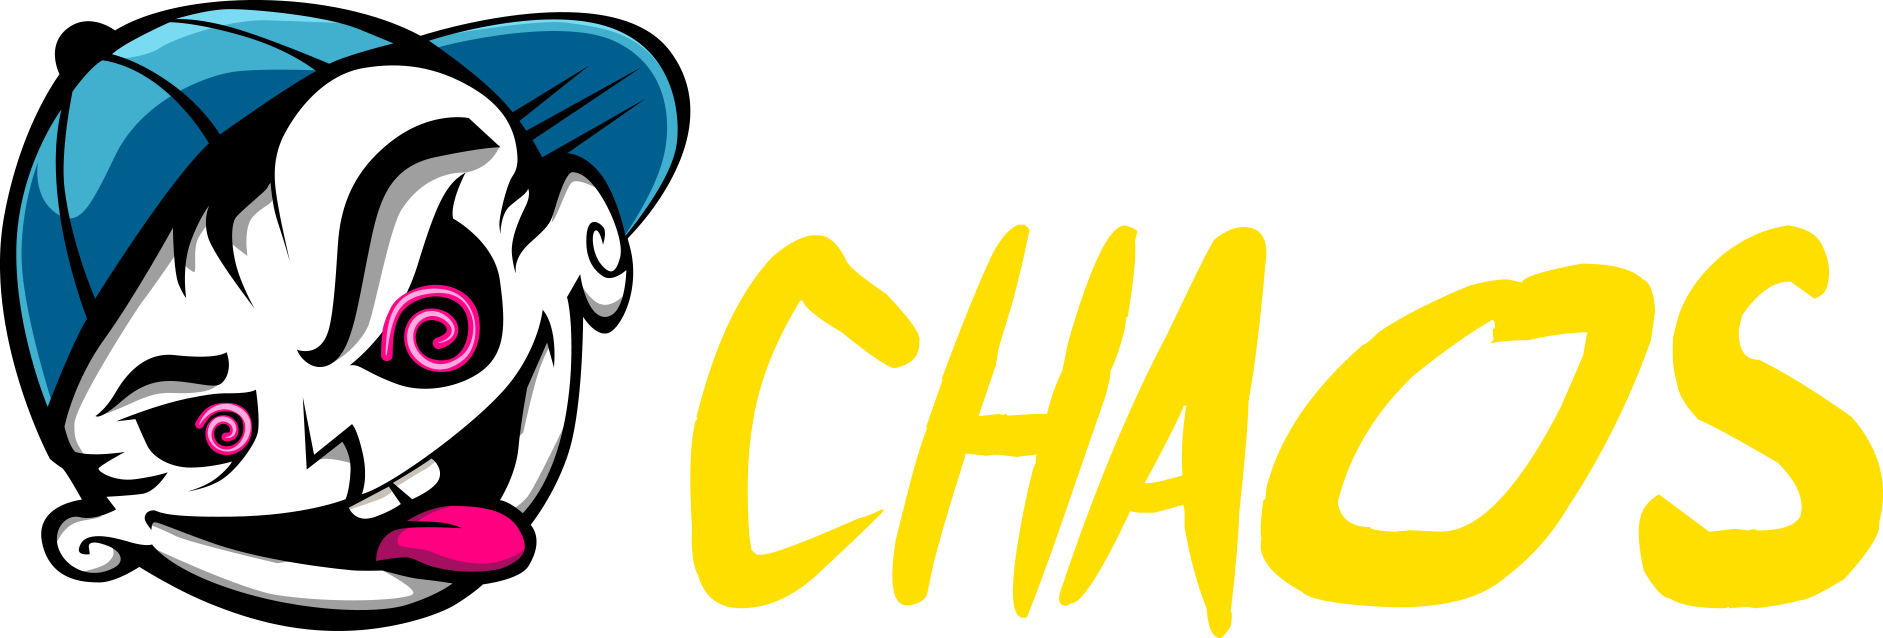 Controller Choas - Full Color Logo